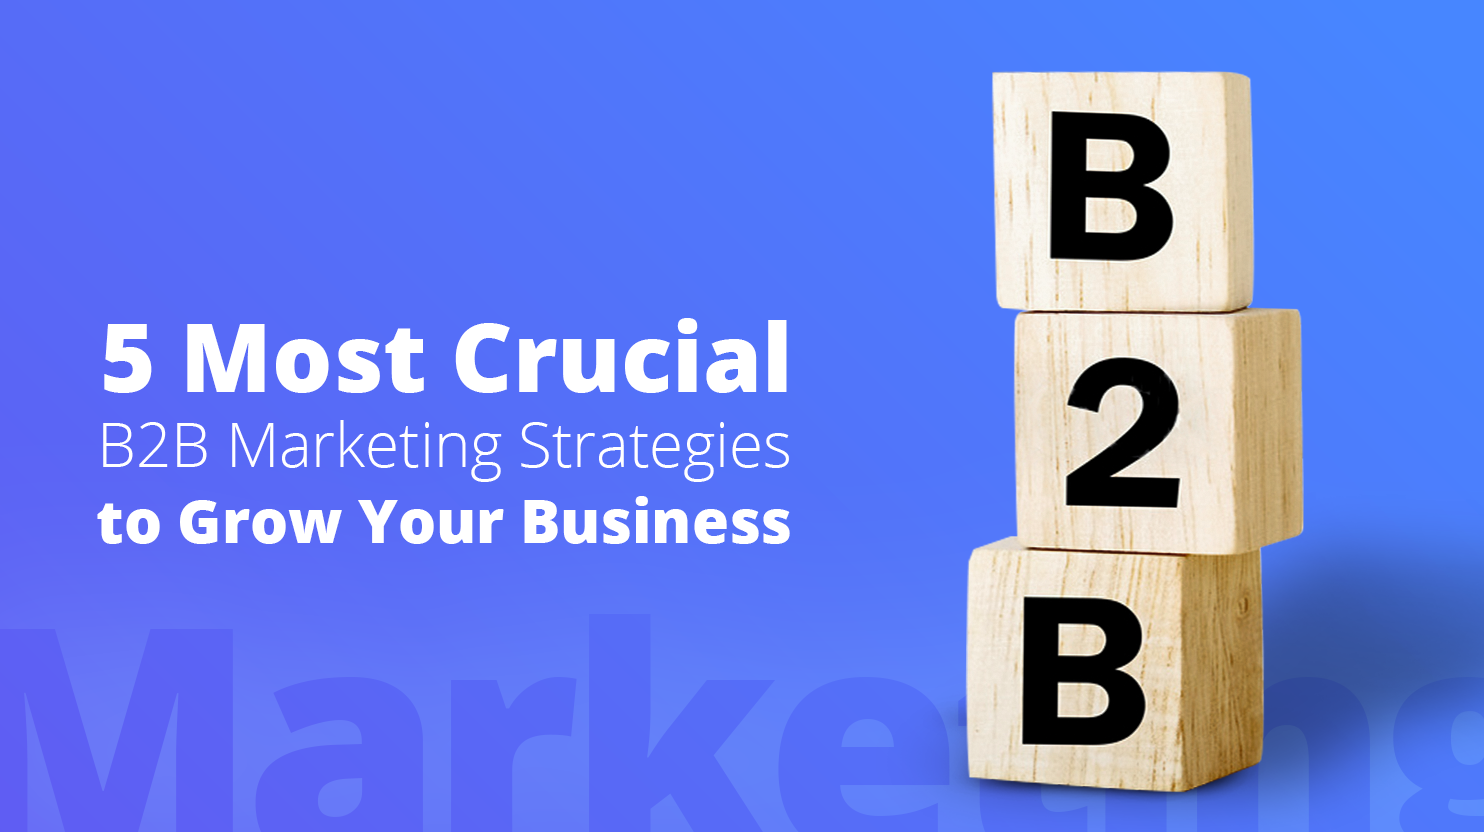 5 most crucial b2b marketing strategies to grow your business